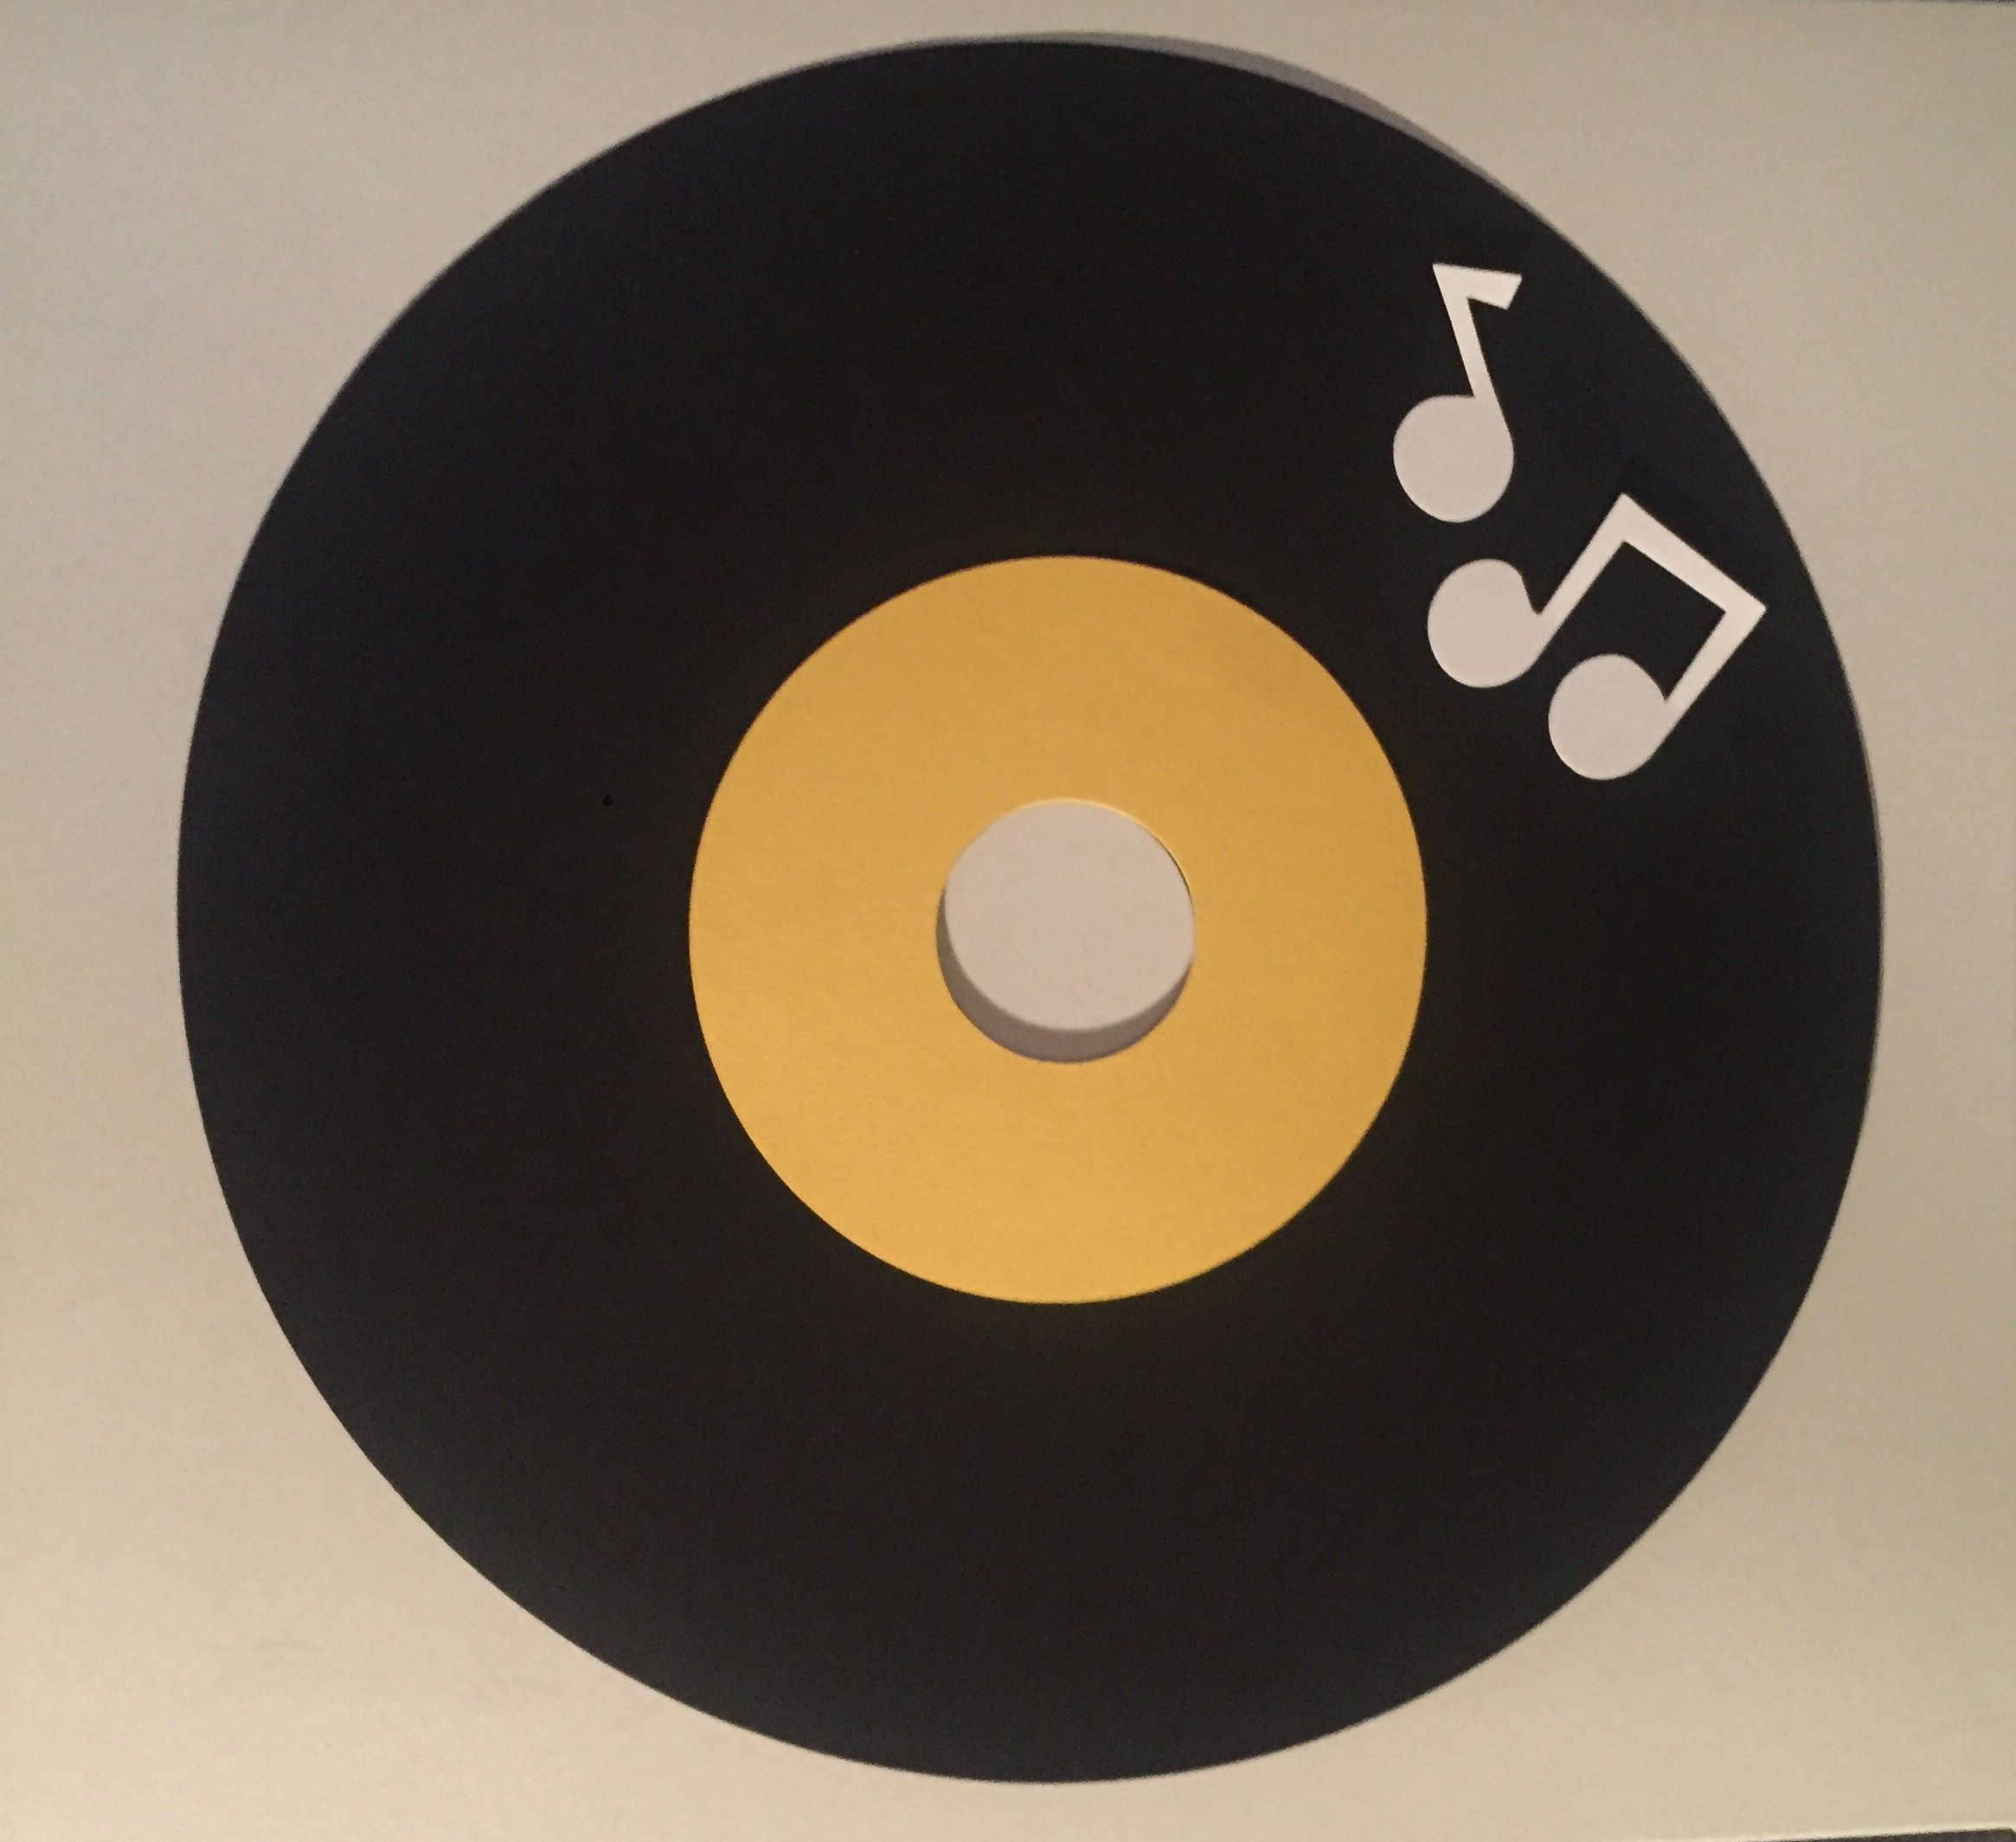 Retro record card stock placemat